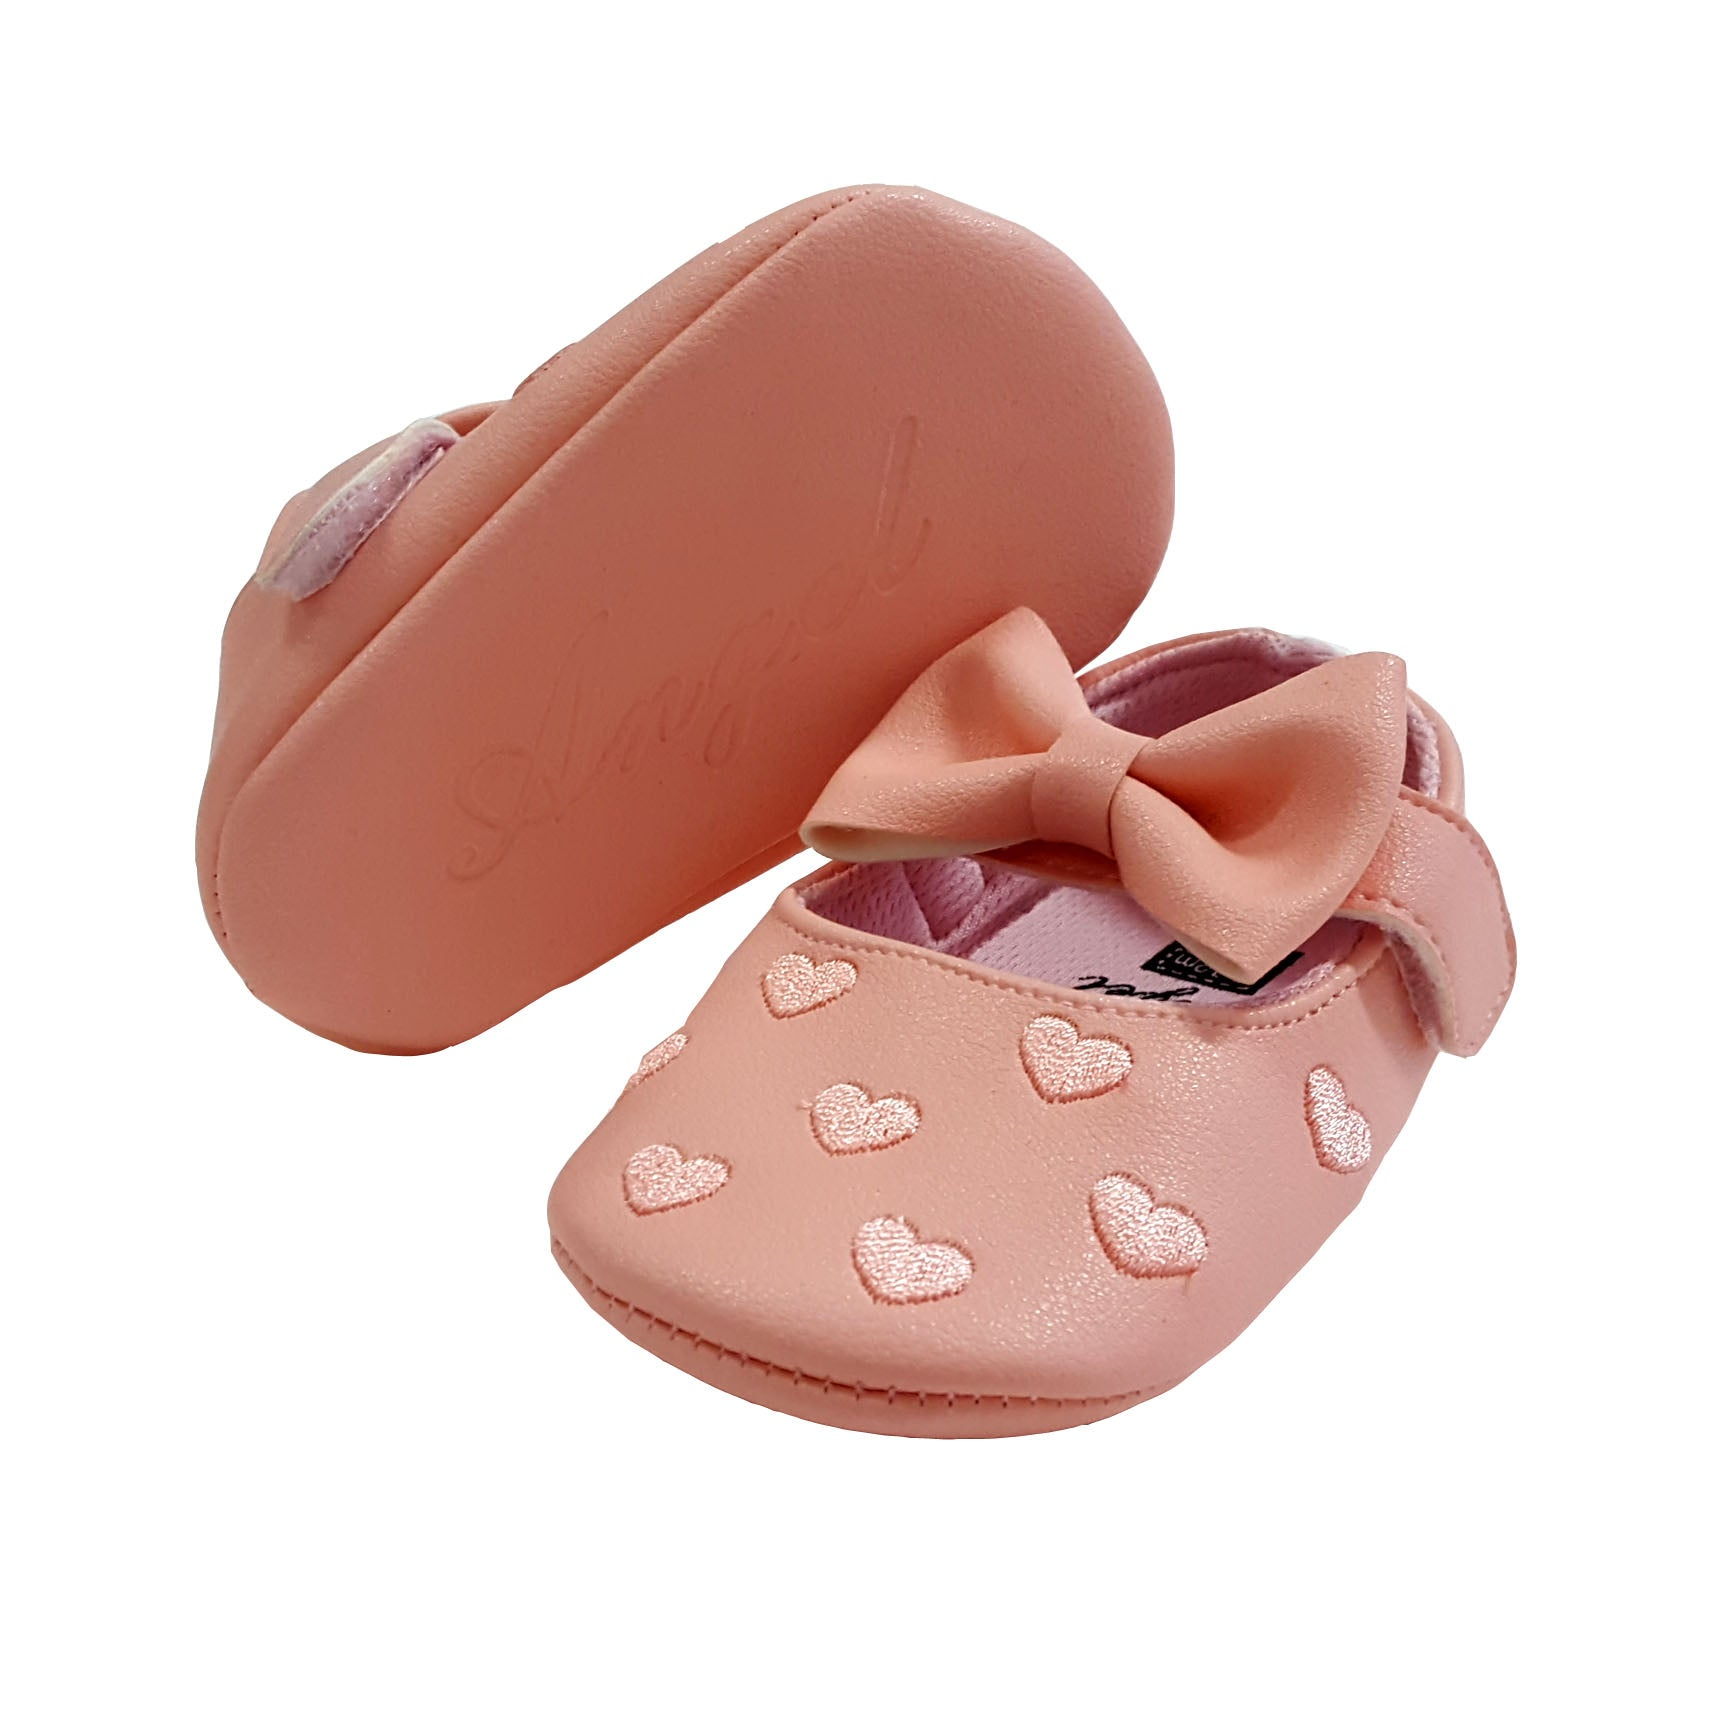 Millie (Pre-Walker Shoes) - B111 Pink Hearts